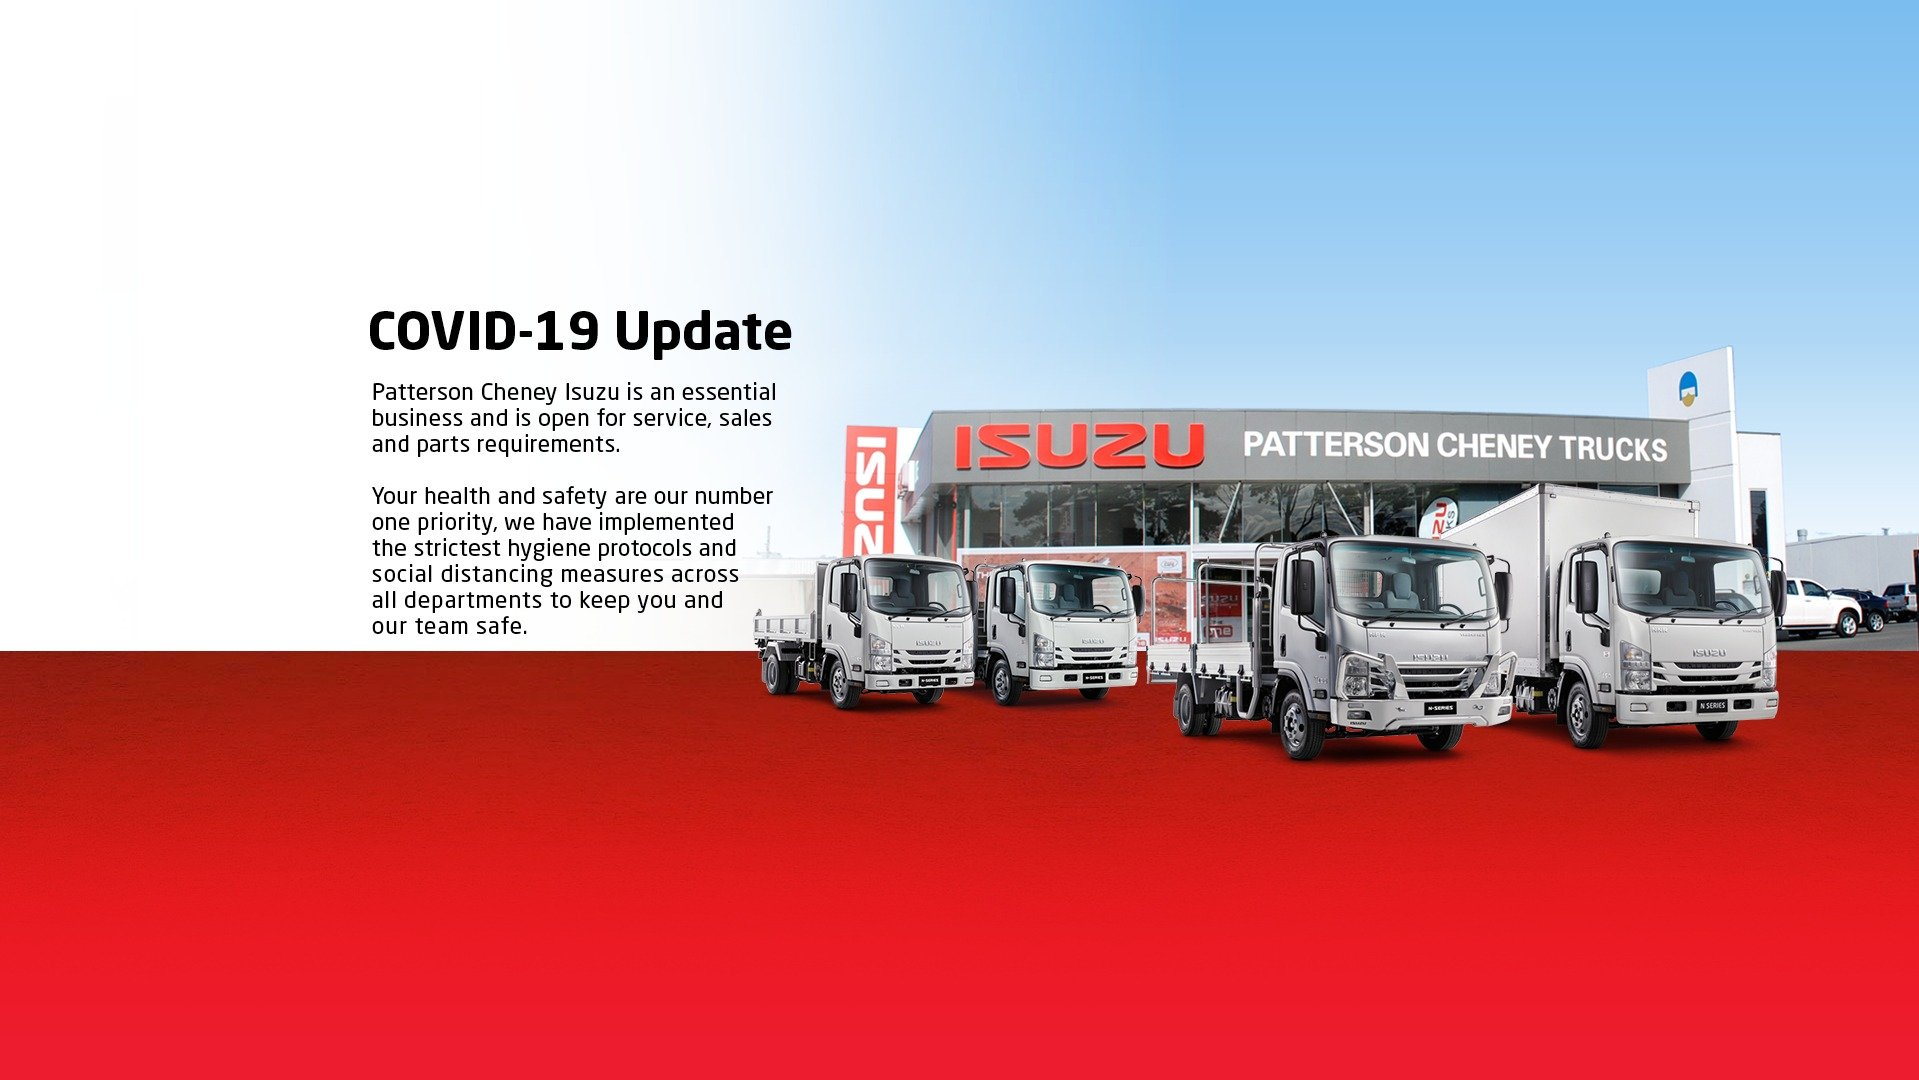 Patterson Cheney Isuzu Covid-19 update